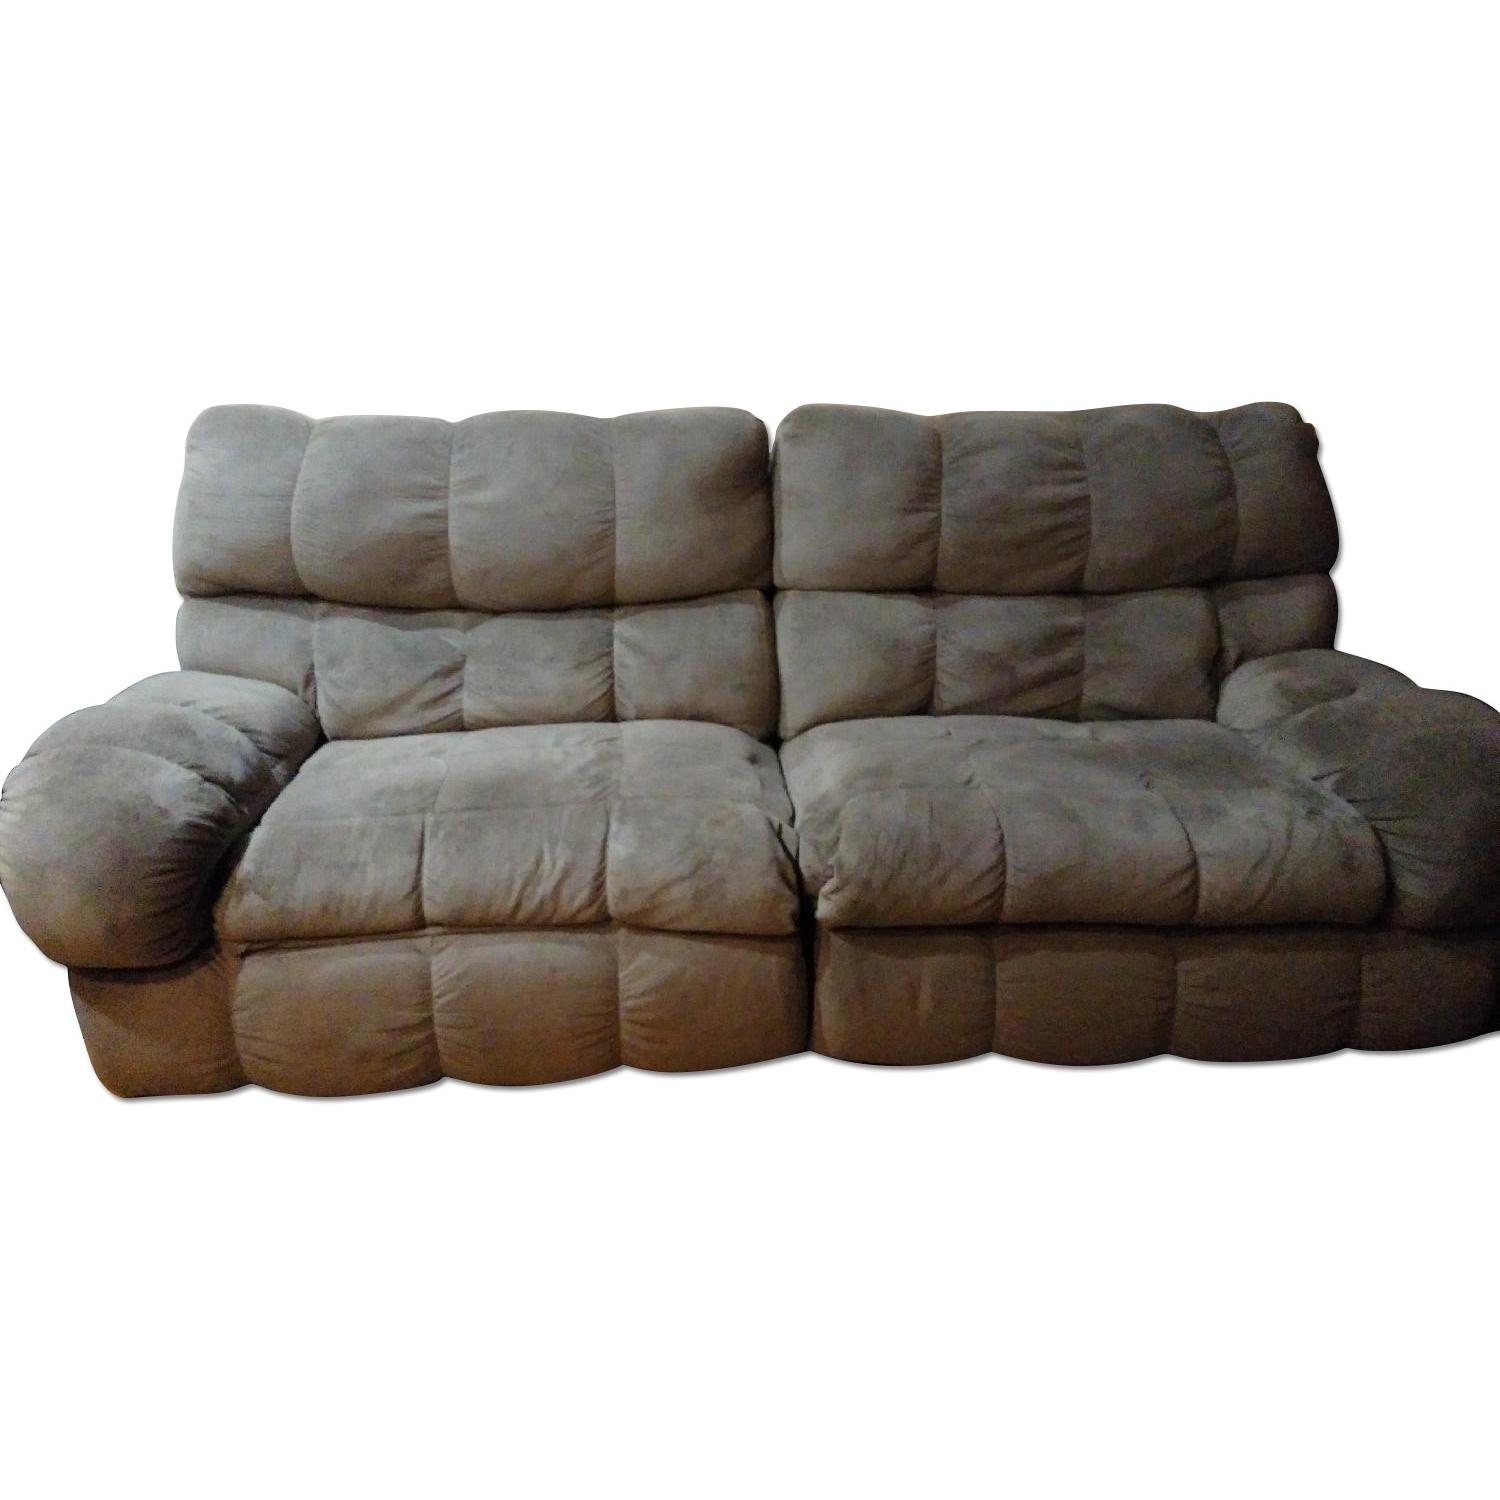 Ashley's Reclining Loveseat - image-0